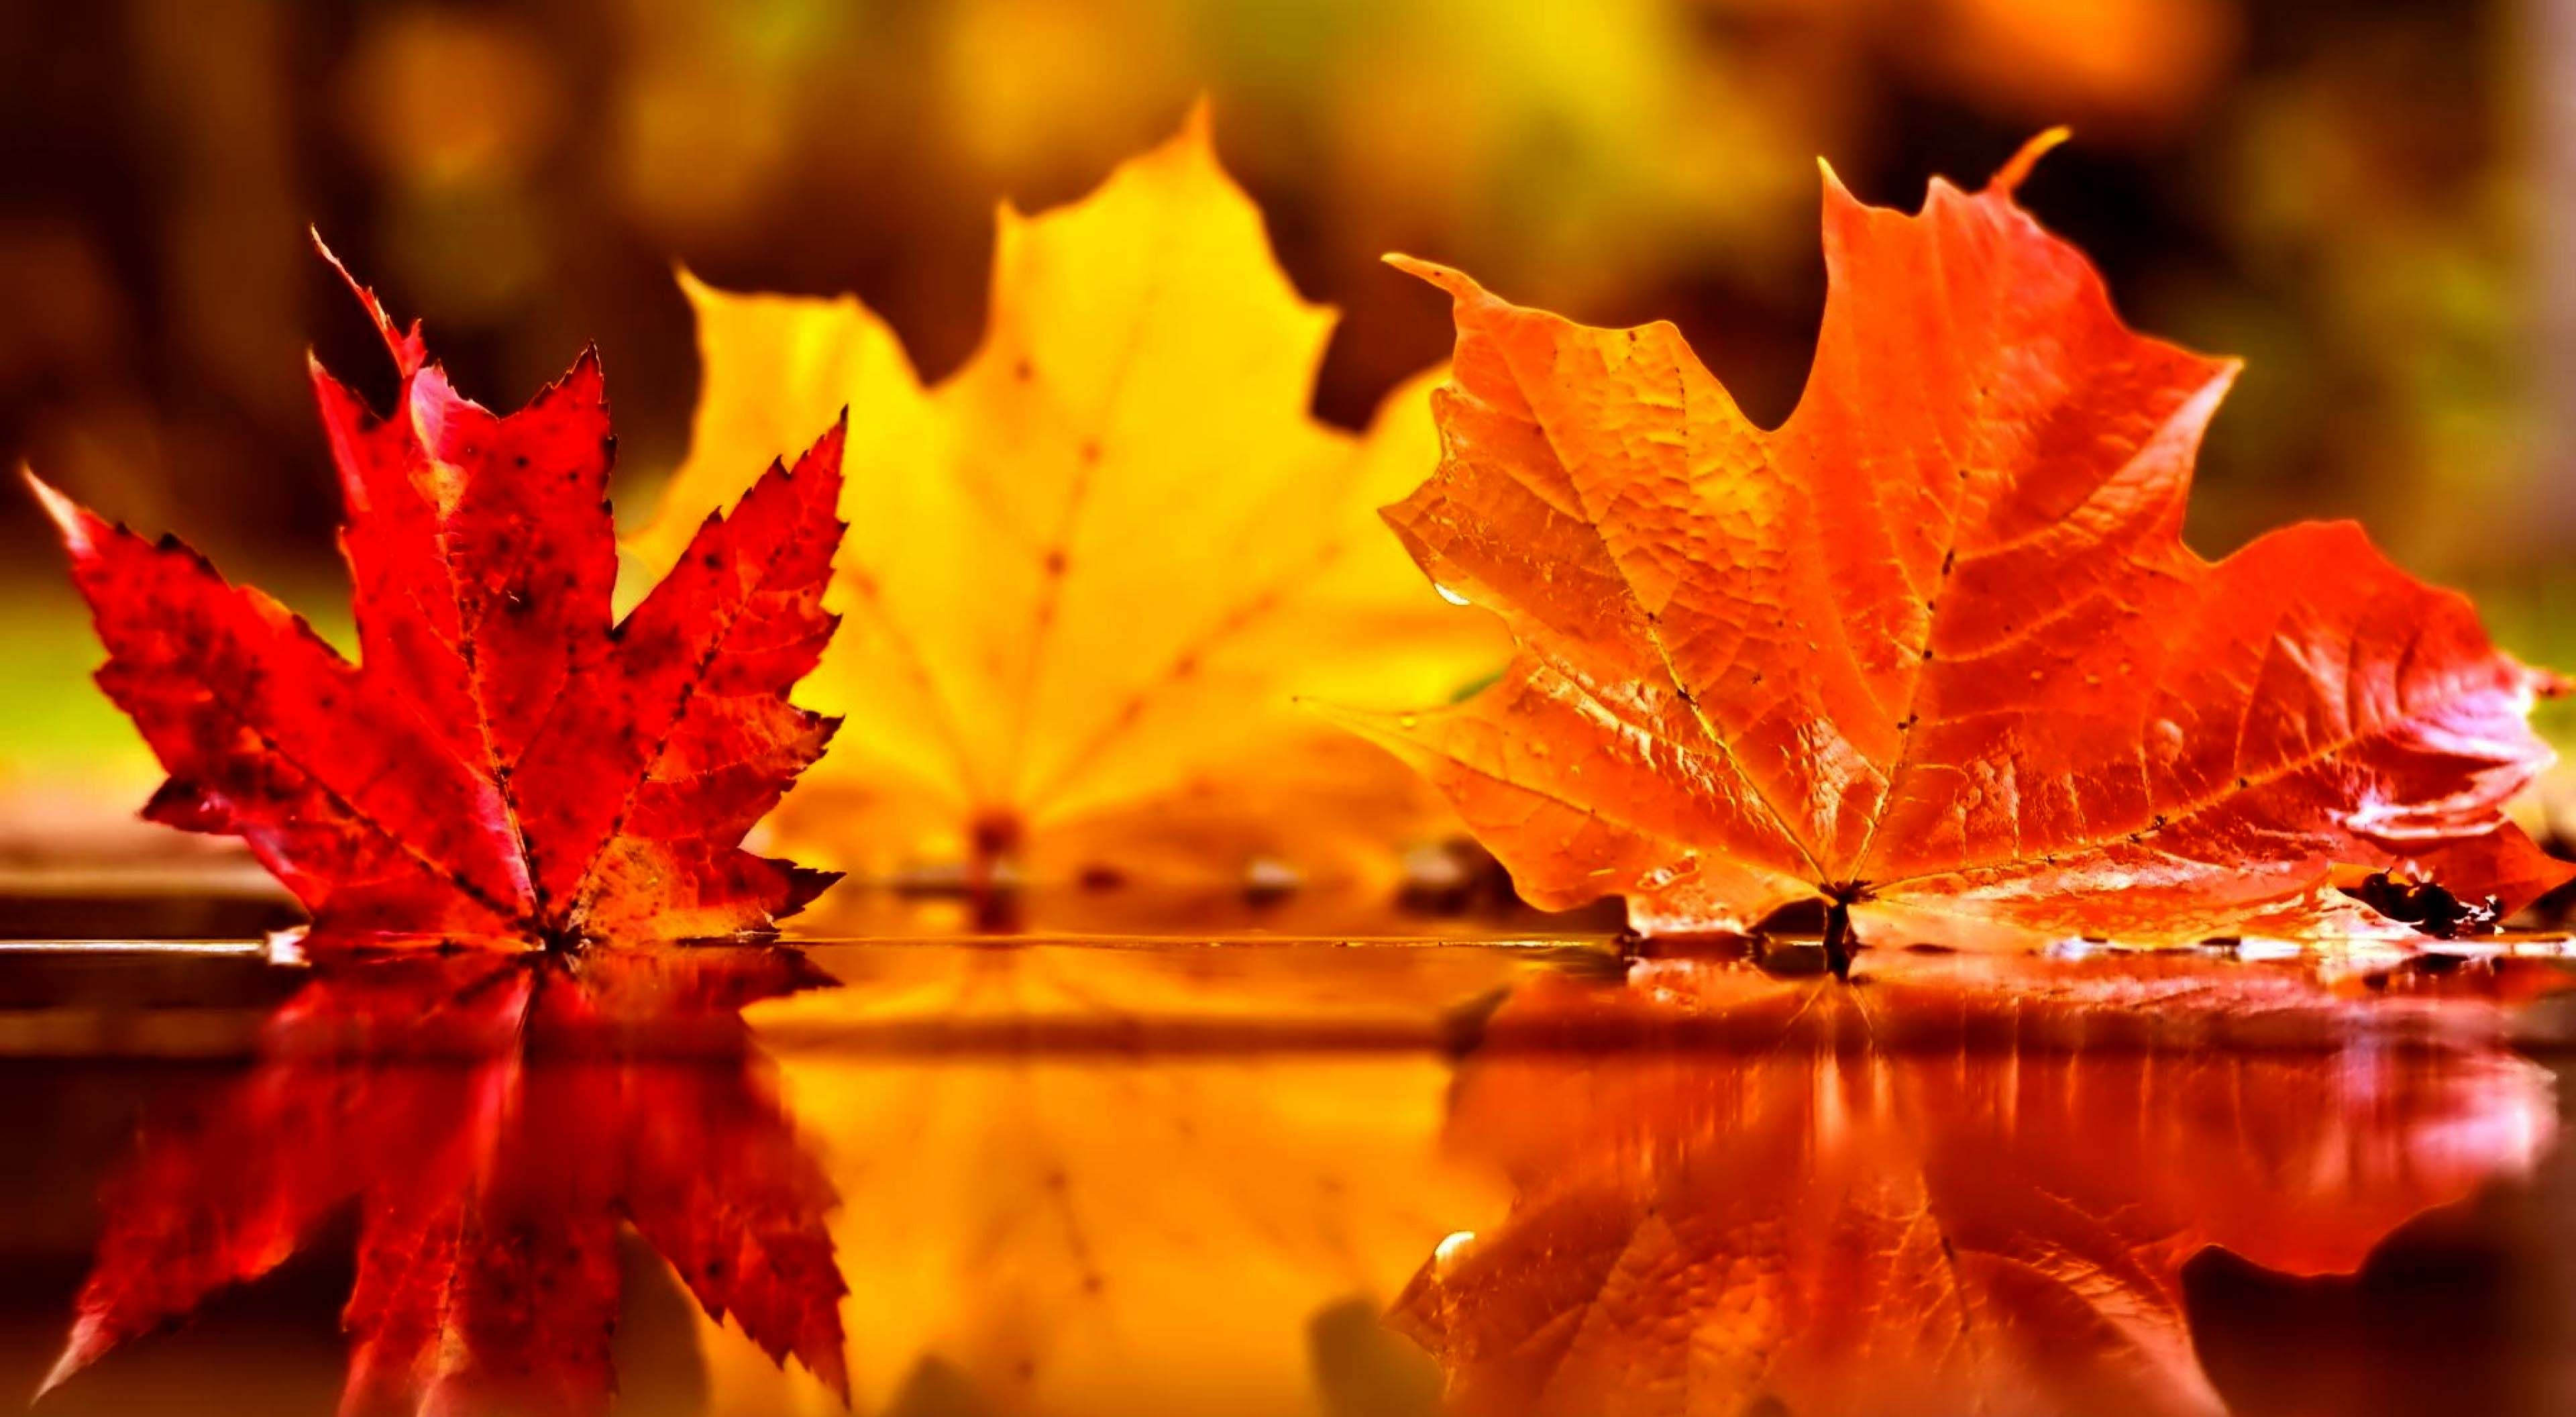 beautiful autumn leaves on water falling red leaves wallpapers a season of paradox